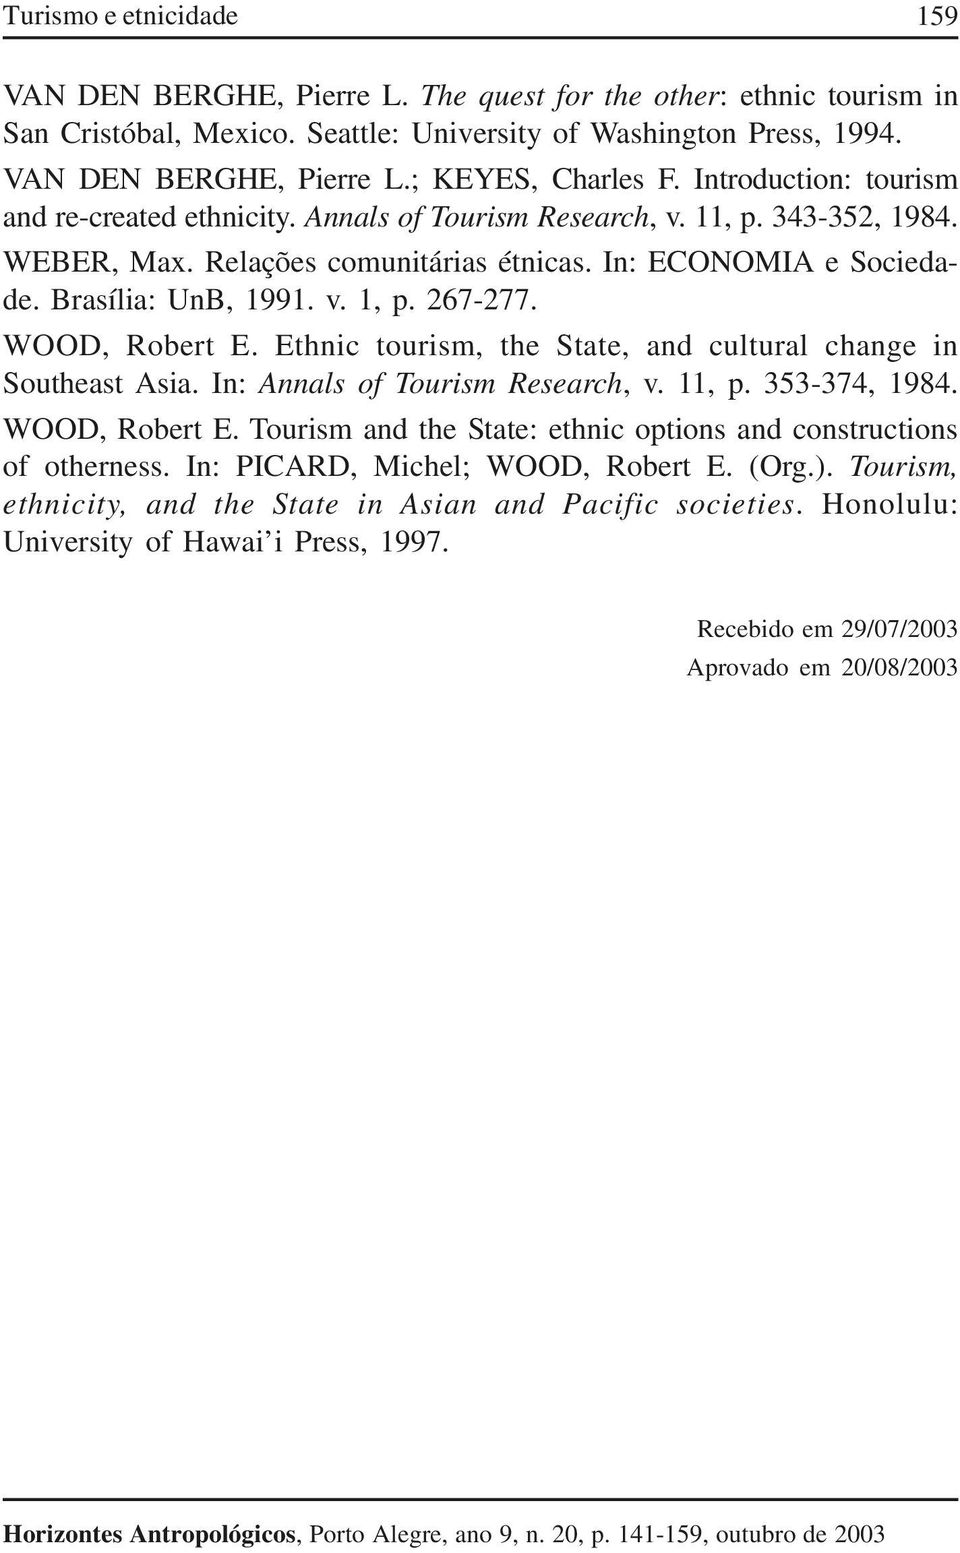 267-277. WOOD, Robert E. Ethnic tourism, the State, and cultural change in Southeast Asia. In: Annals of Tourism Research, v. 11, p. 353-374, 1984. WOOD, Robert E. Tourism and the State: ethnic options and constructions of otherness.